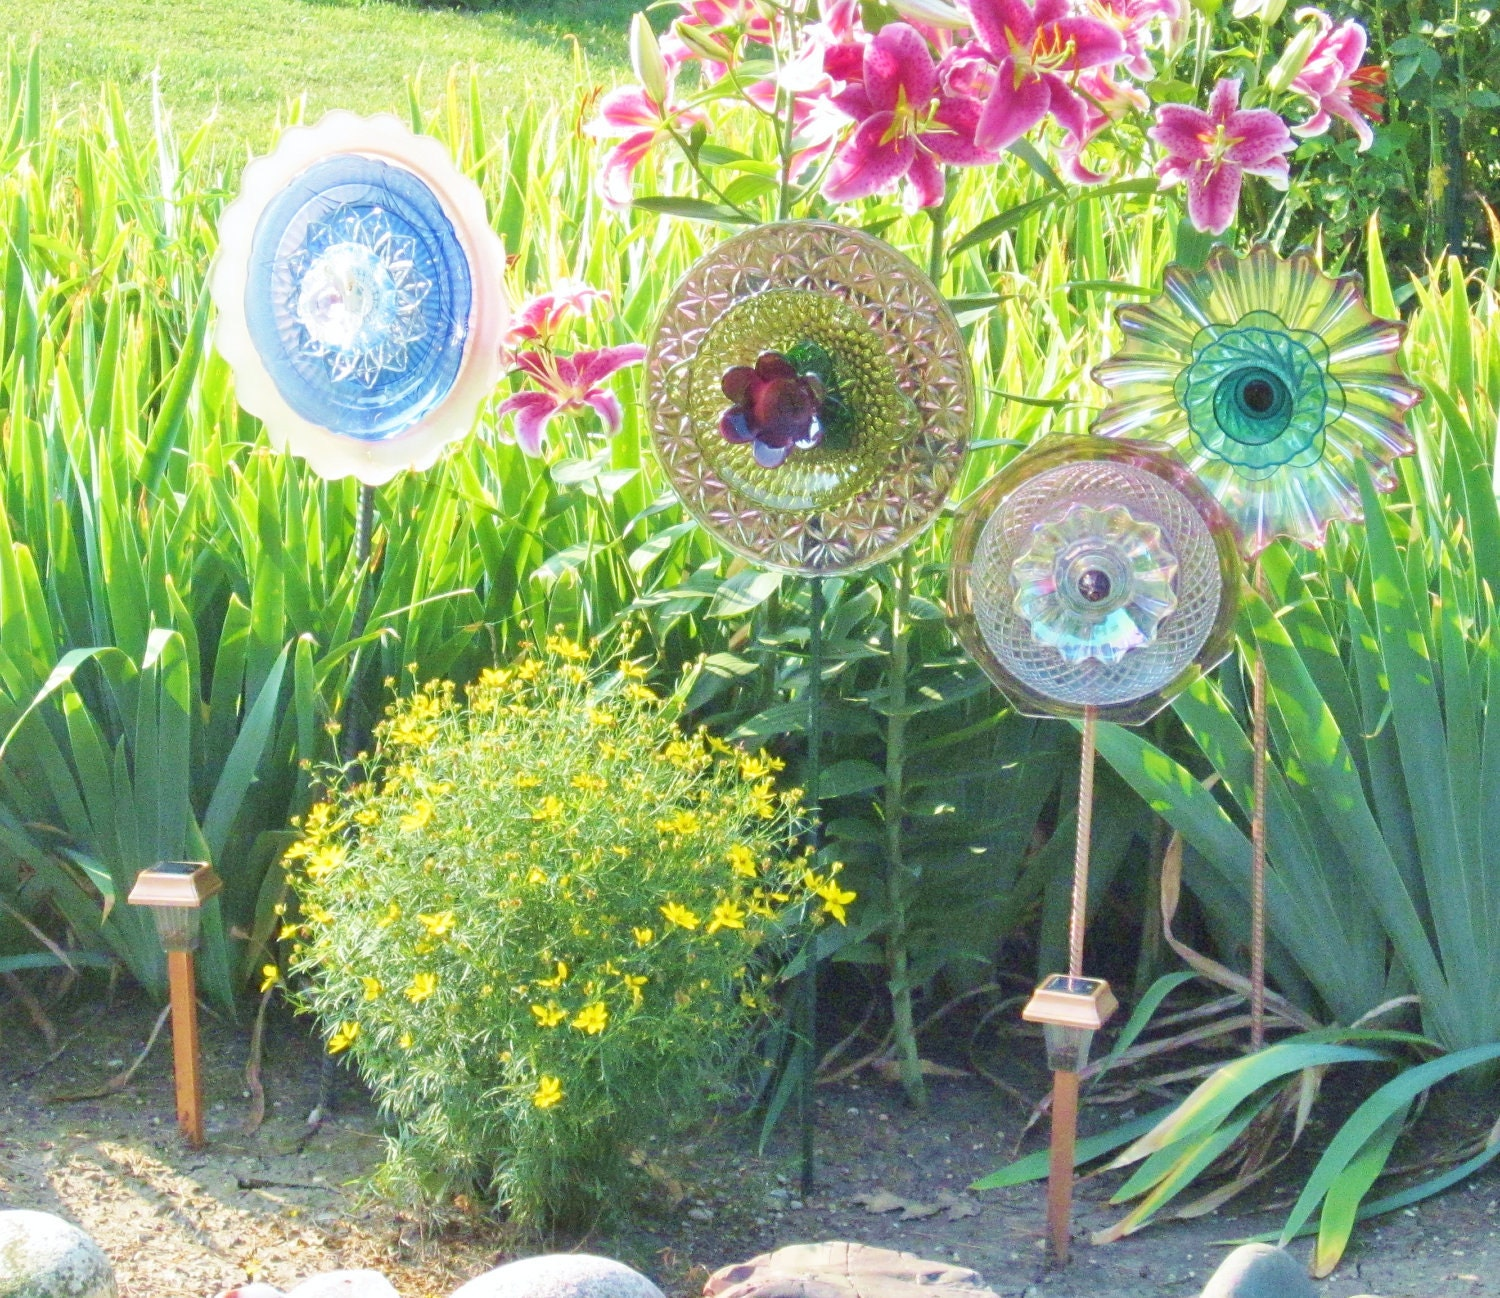 Lawn and garden decorative accessories garden decoration ideas - Garden decor accessories ...